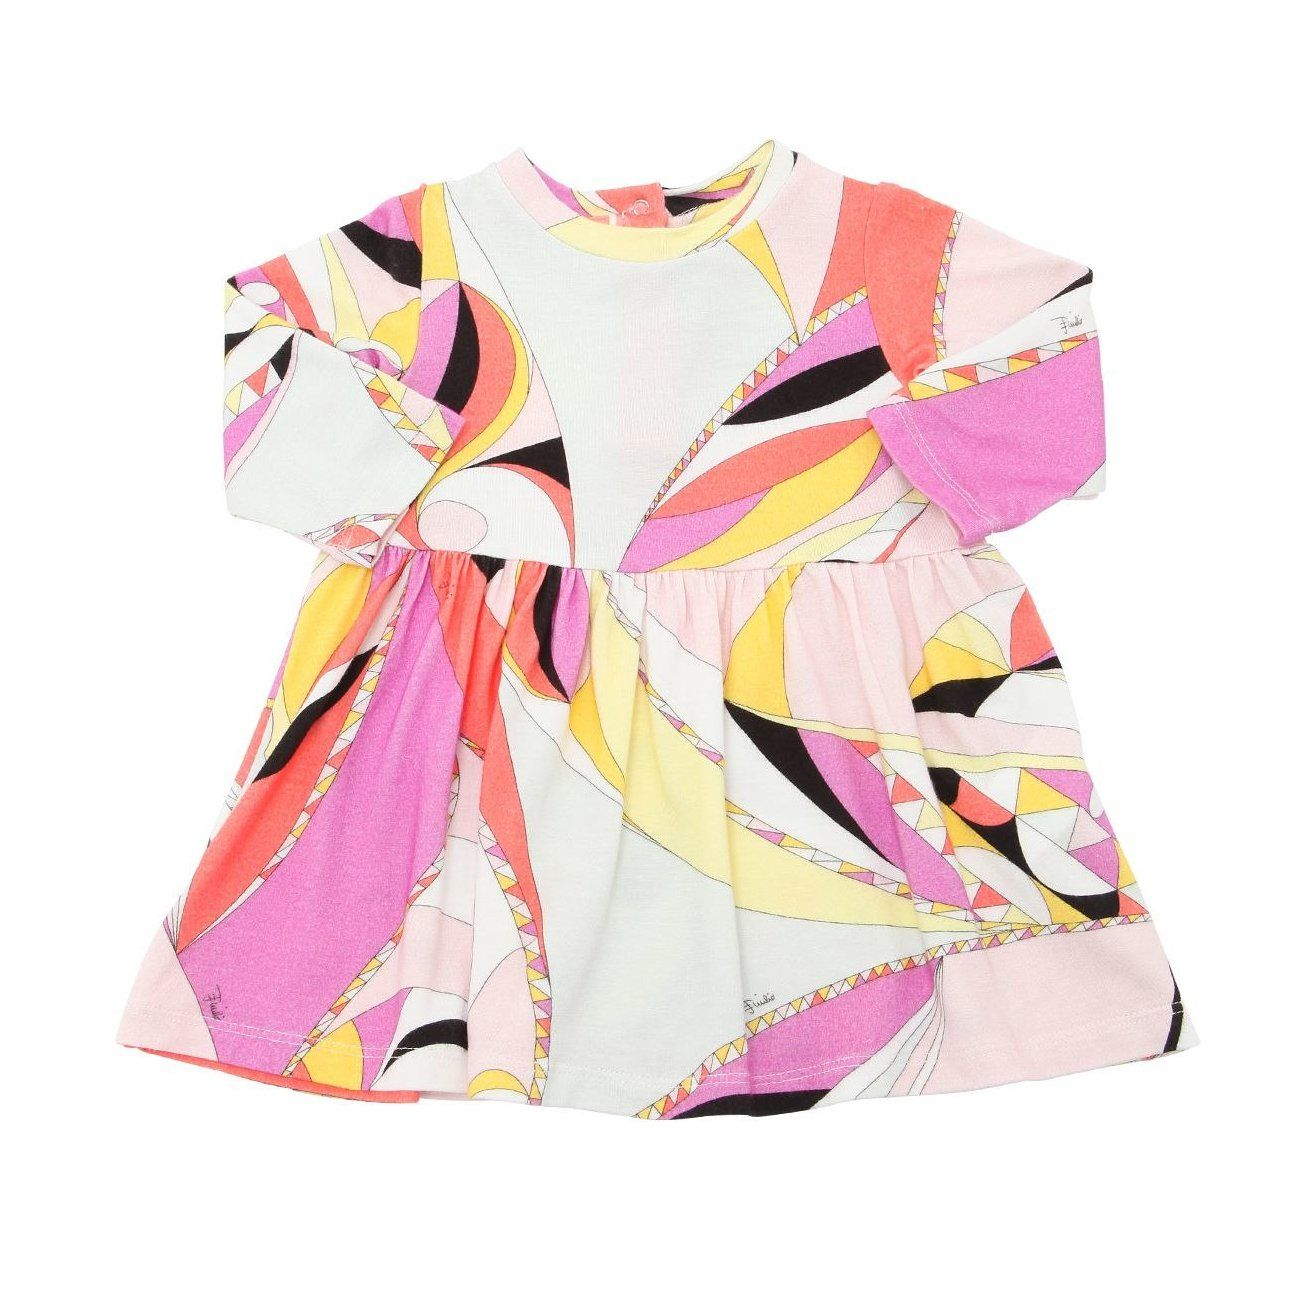 40199764fe32 Emilio Pucci Baby Girls Colorful Printed Flared Dress